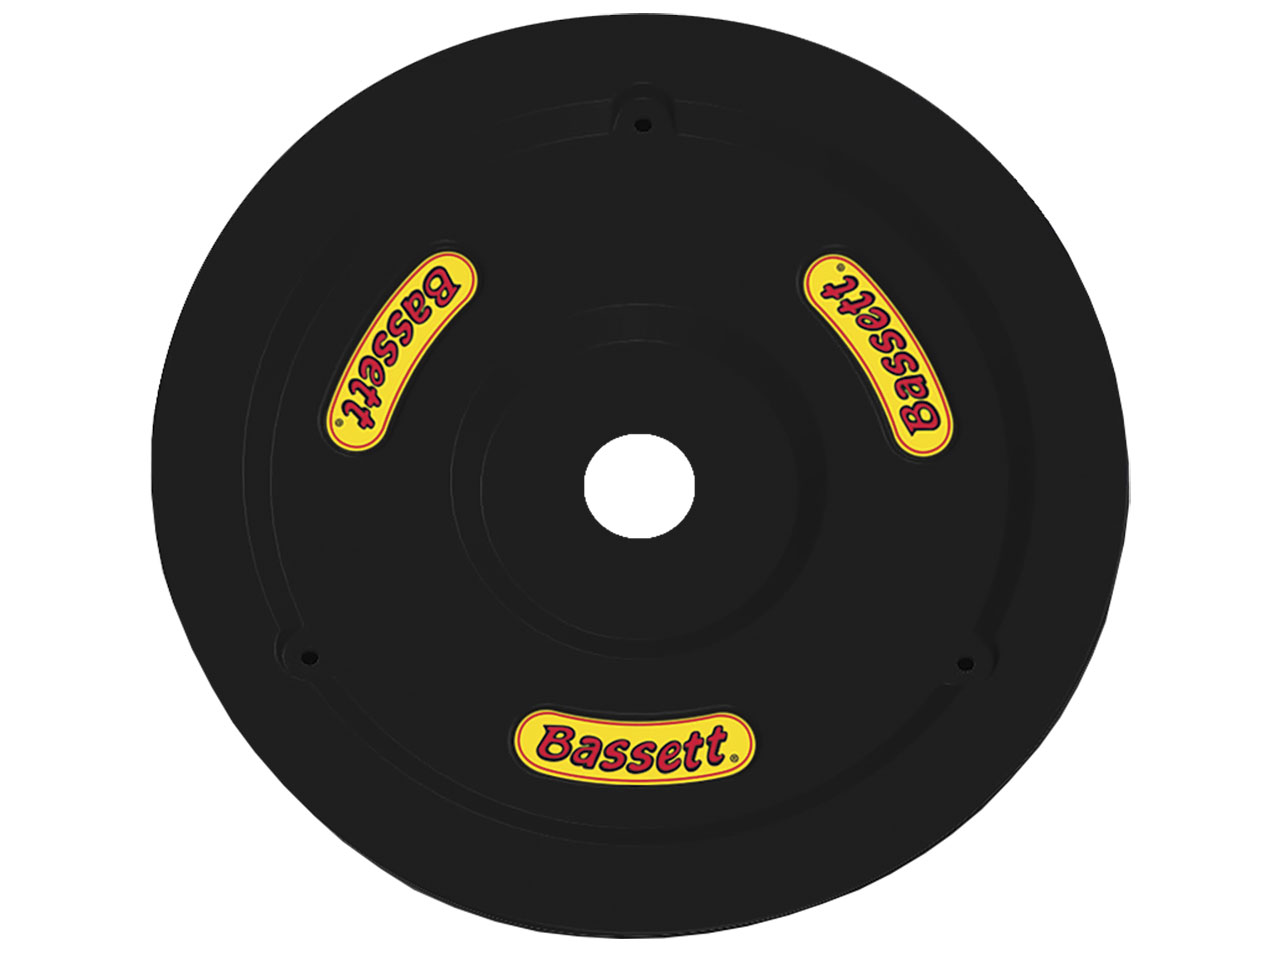 Bassett Plastic Wheel Cover and Bolt Kit - (Black)